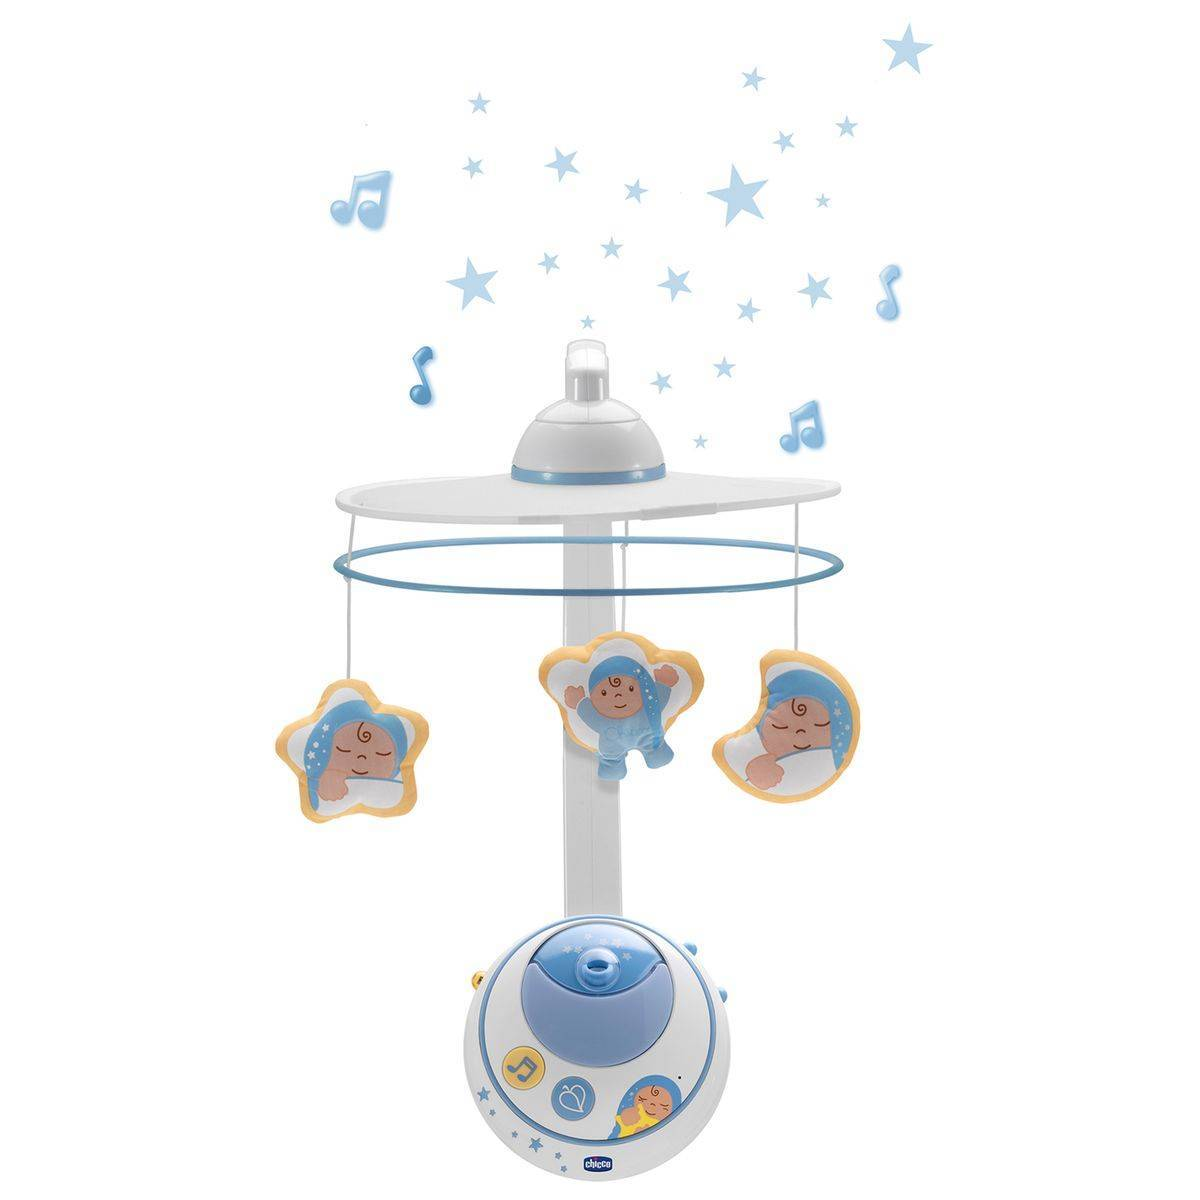 Chicco Mobile des Rêves double projection, bleu - CHICCO